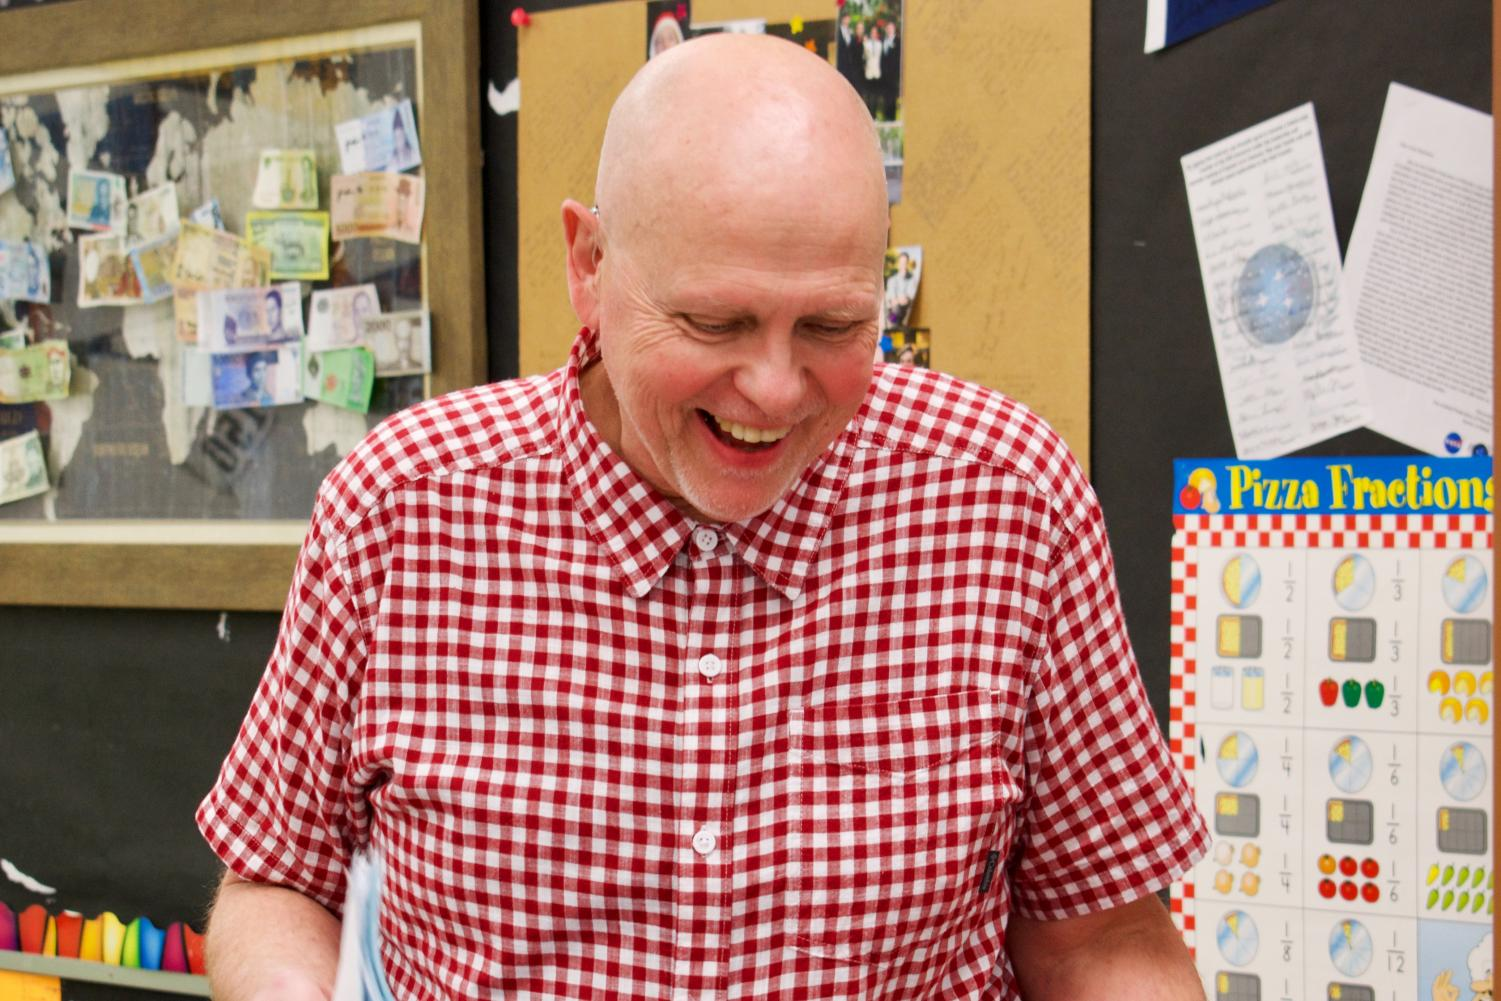 Mr.+Swanson%2C+the+co-department+chair+of+the+math+department%2C+was+awarded+Lasallian+Educator+of+the+Year.